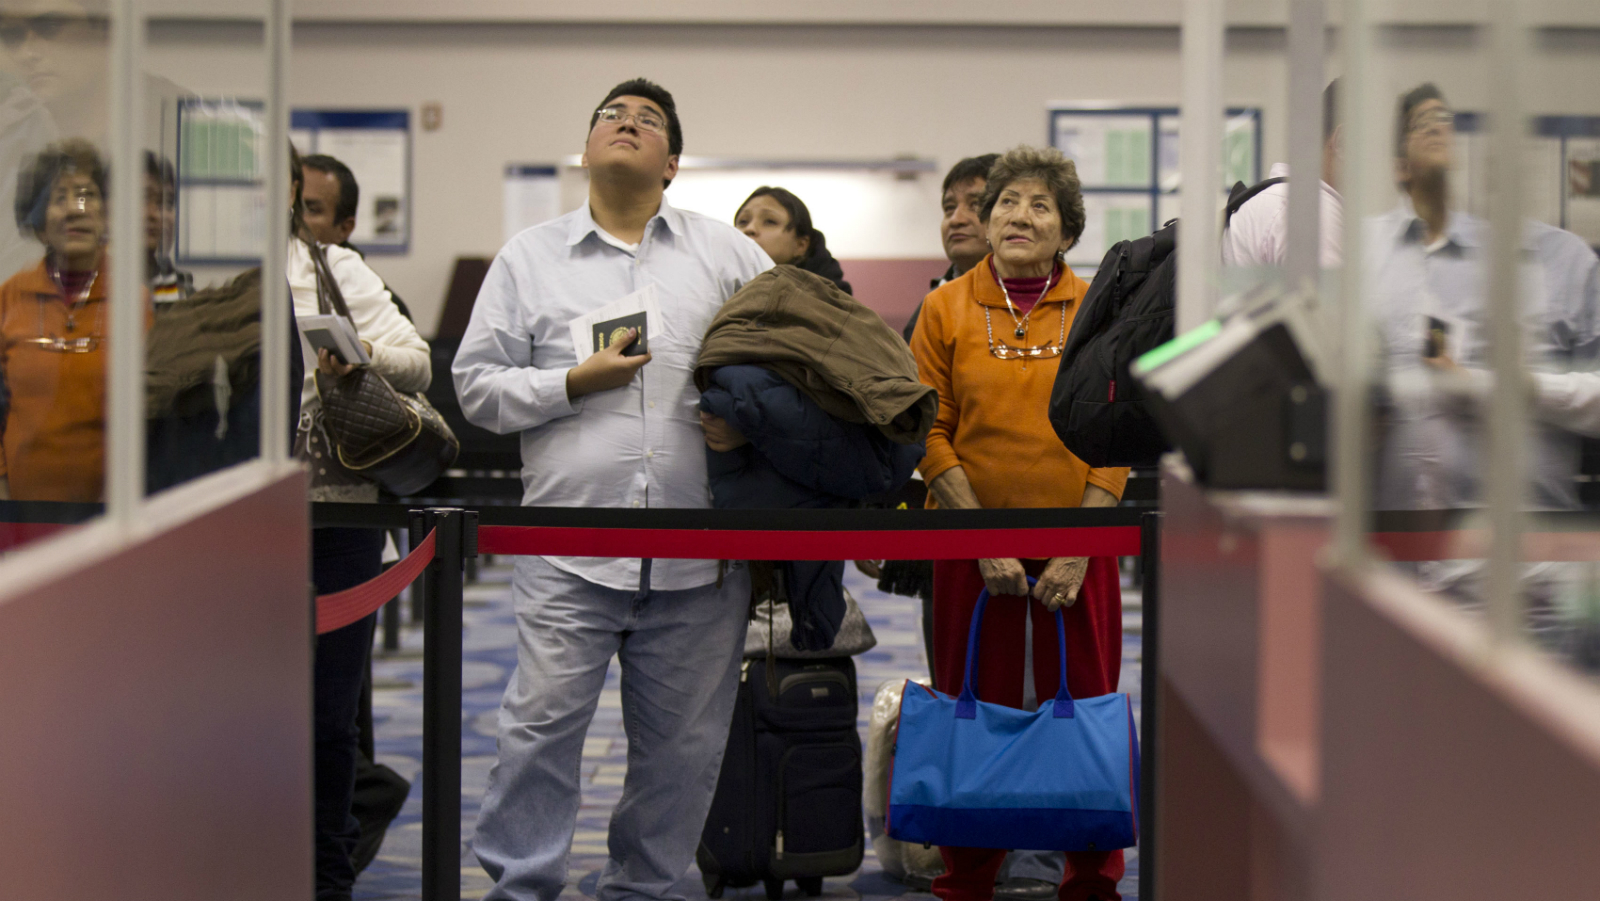 Non-resident visitors to the United States wait in line at immigration control after arriving at McCarran International Airport, Tuesday, Dec. 13, 2011, in Las Vegas. The U.S. Travel Association is pushing Congress to make it easier for foreigners to visit the United States. (AP Photo/Julie Jacobson)